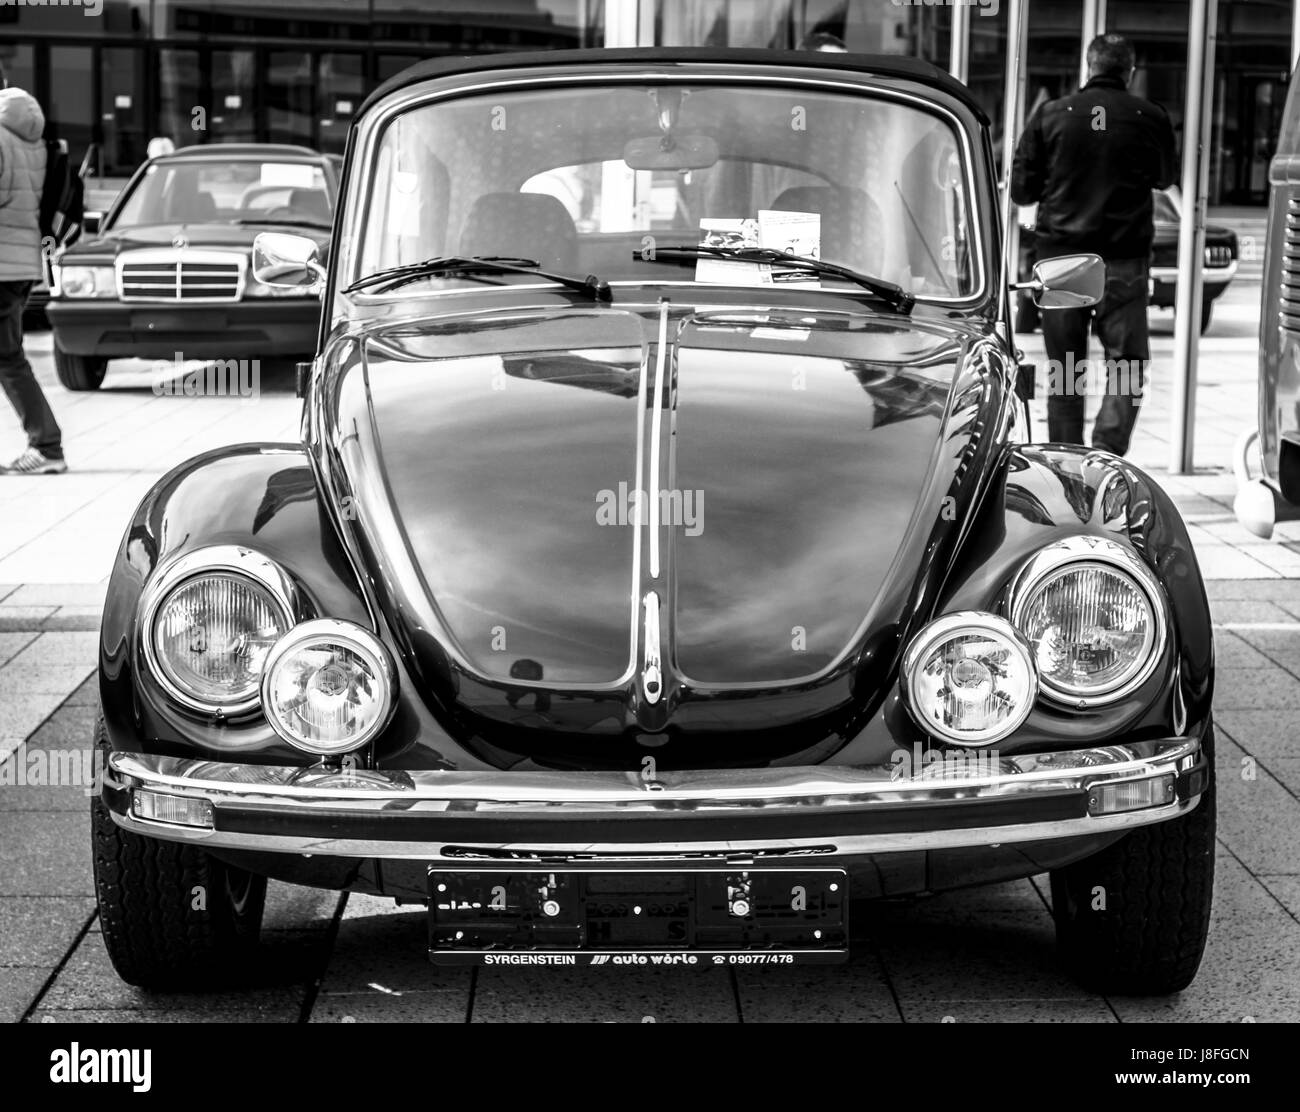 STUTTGART, GERMANY - MARCH 04, 2017: Compact car Volkswagen Beetle Cabrio, 1976. Black and white. Europe's greatest - Stock Image